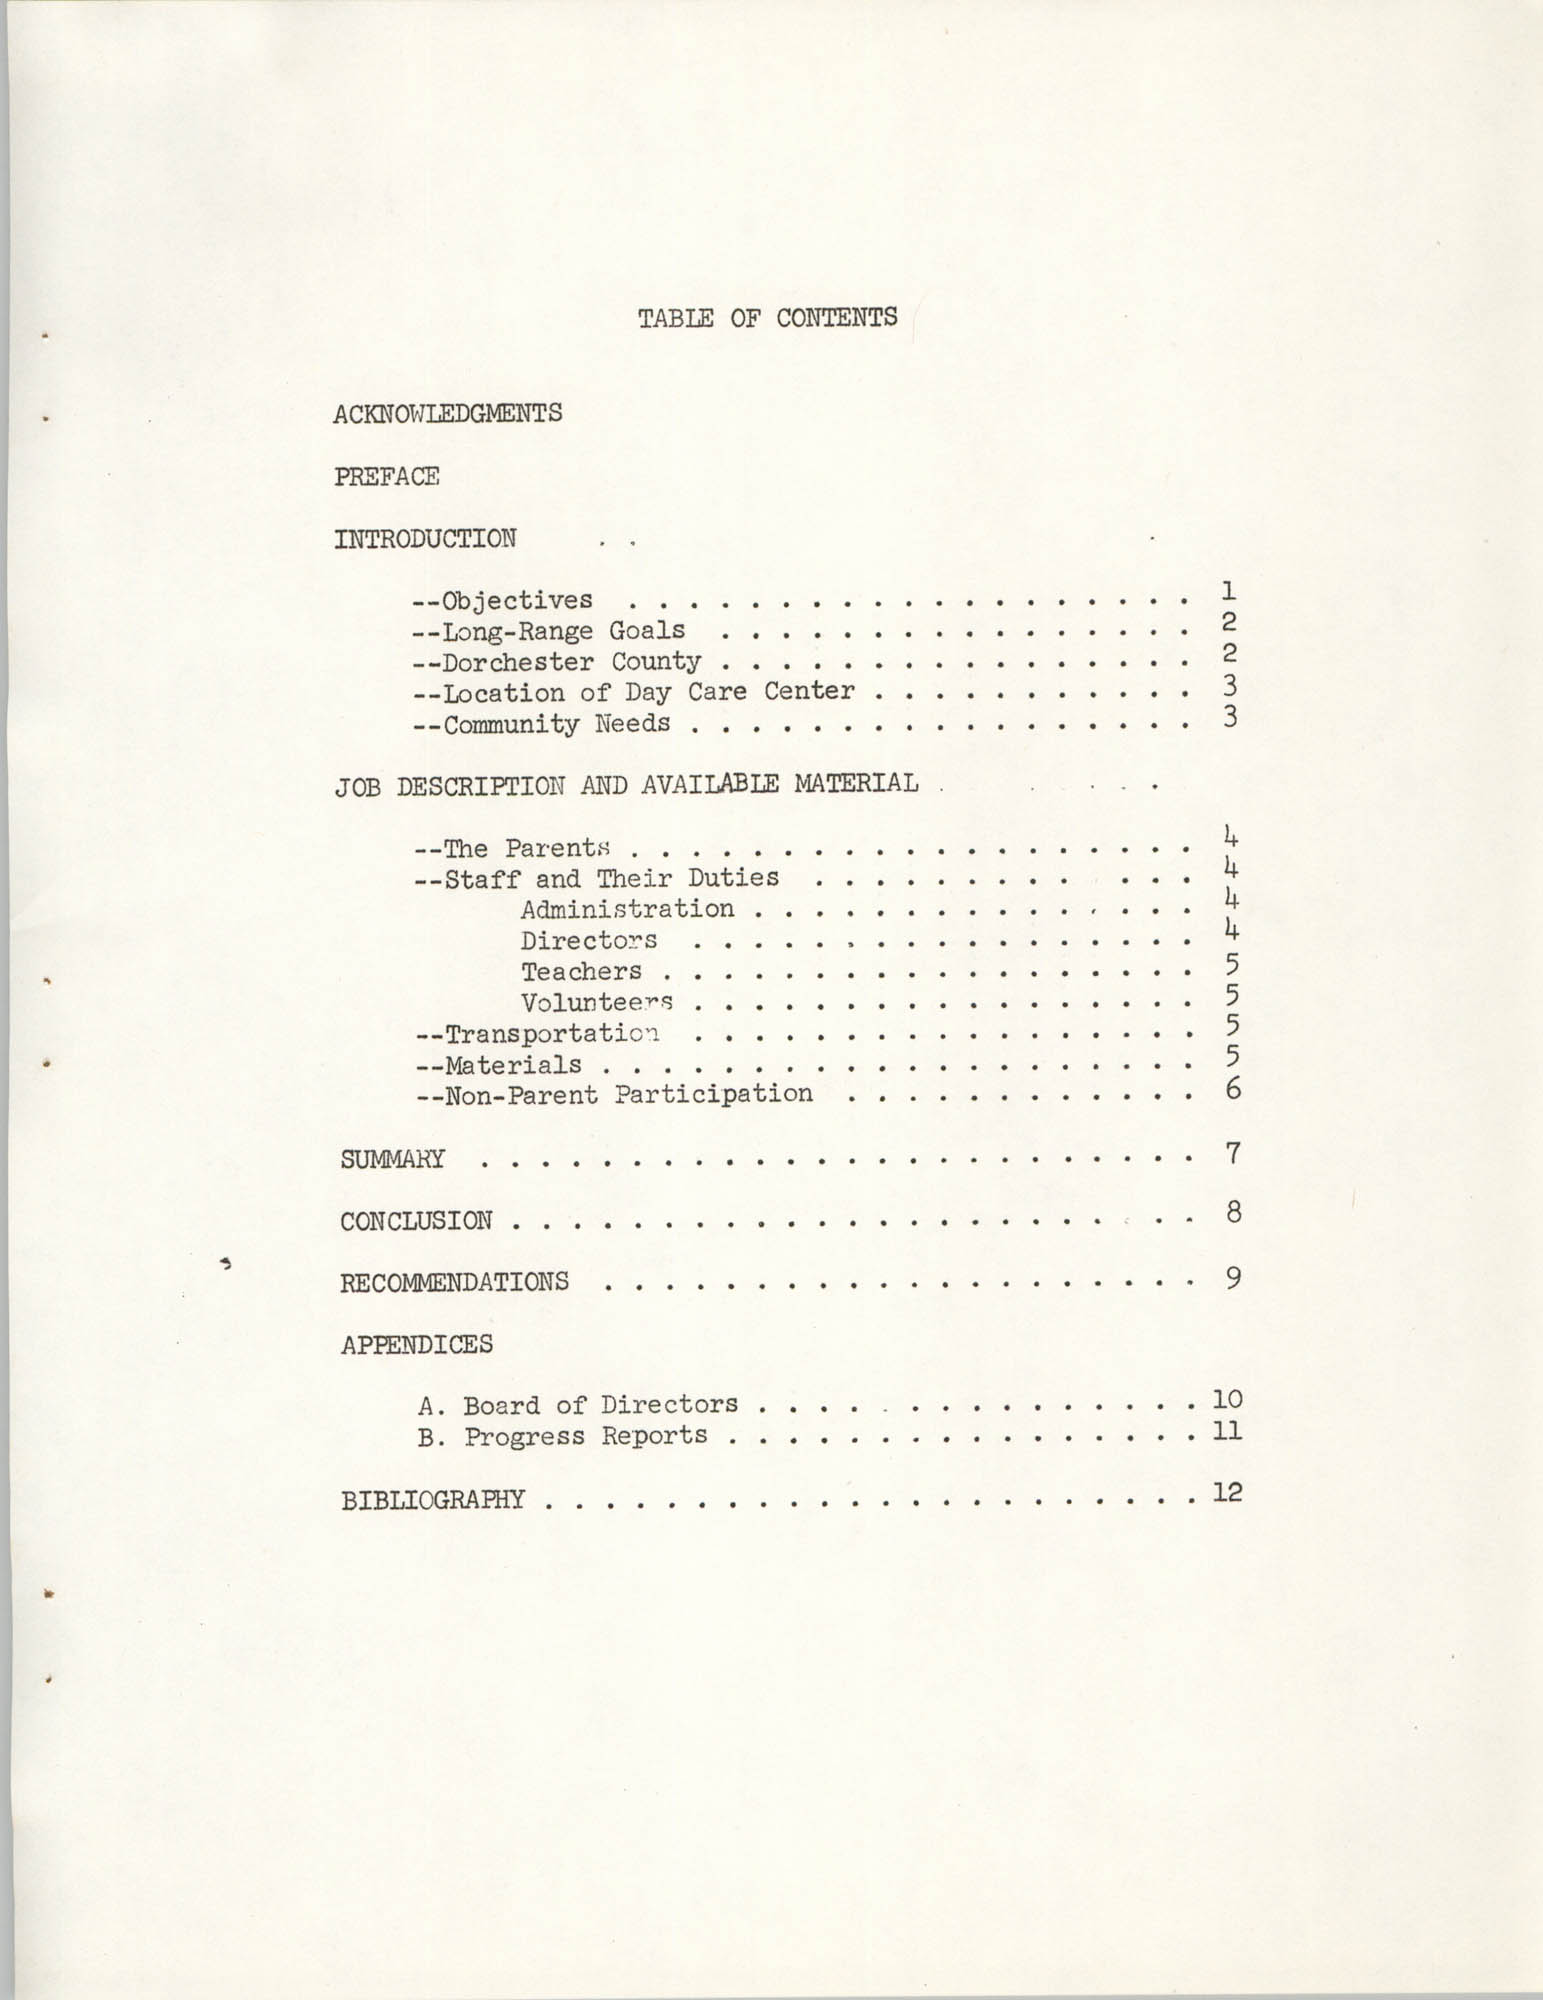 Child Care Ministry, Dorchester County, S.C., Table of Contents